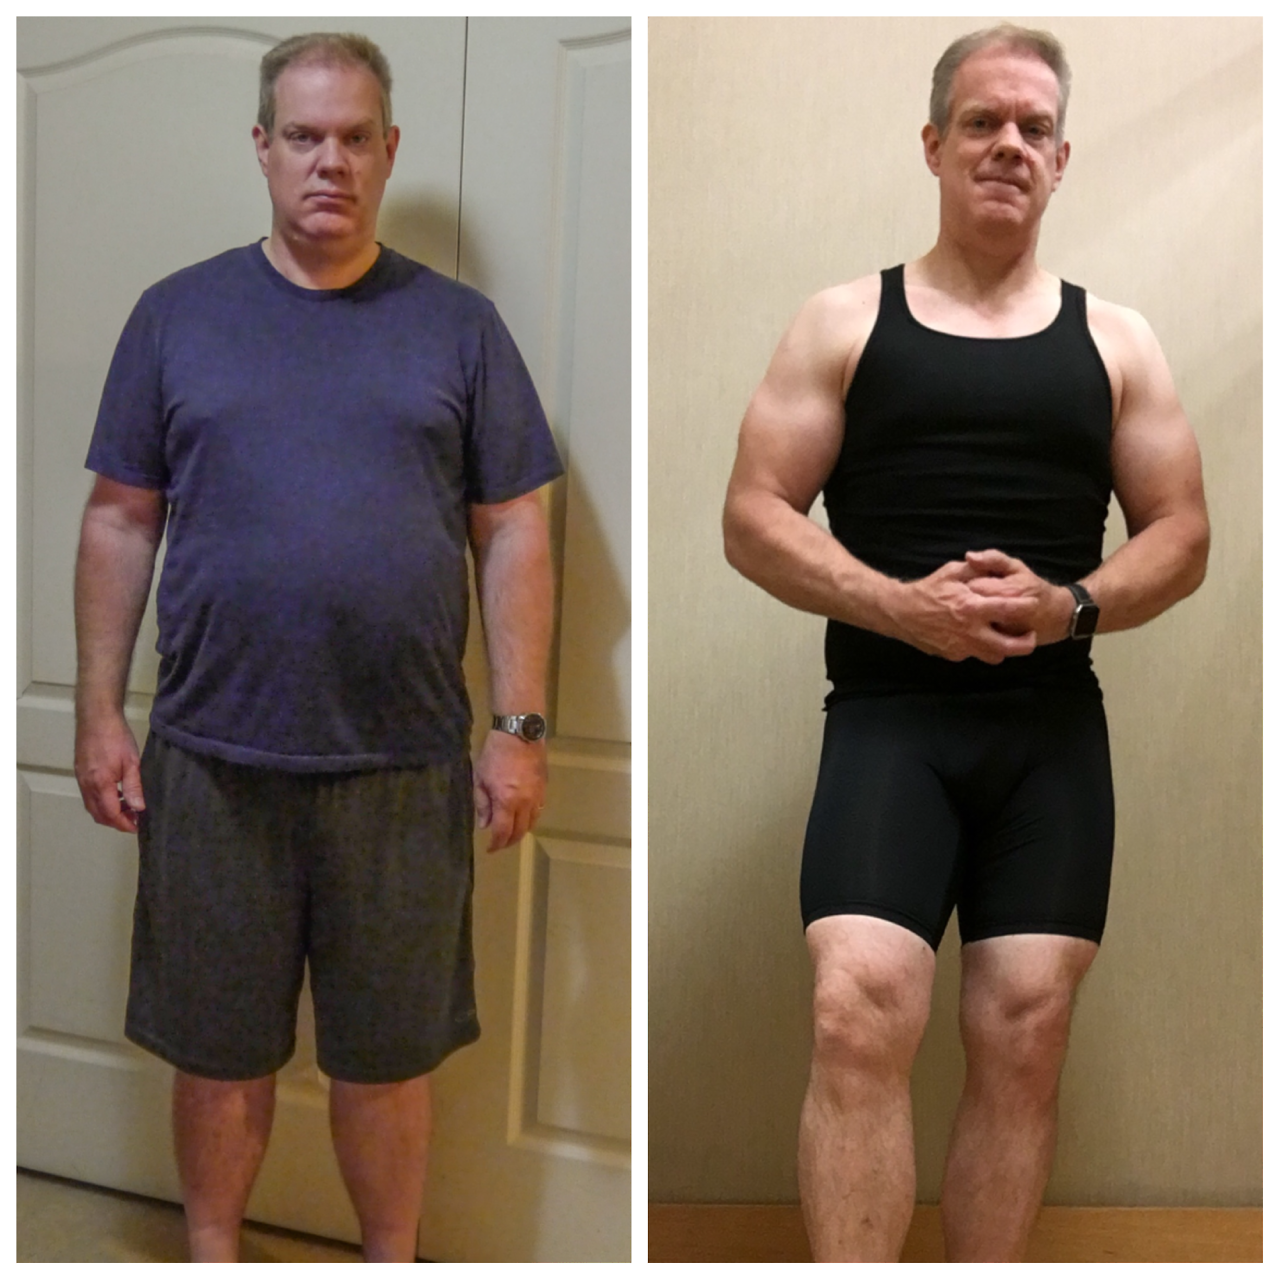 52yo Guy Loses 70 Pounds (Never Too Late!)